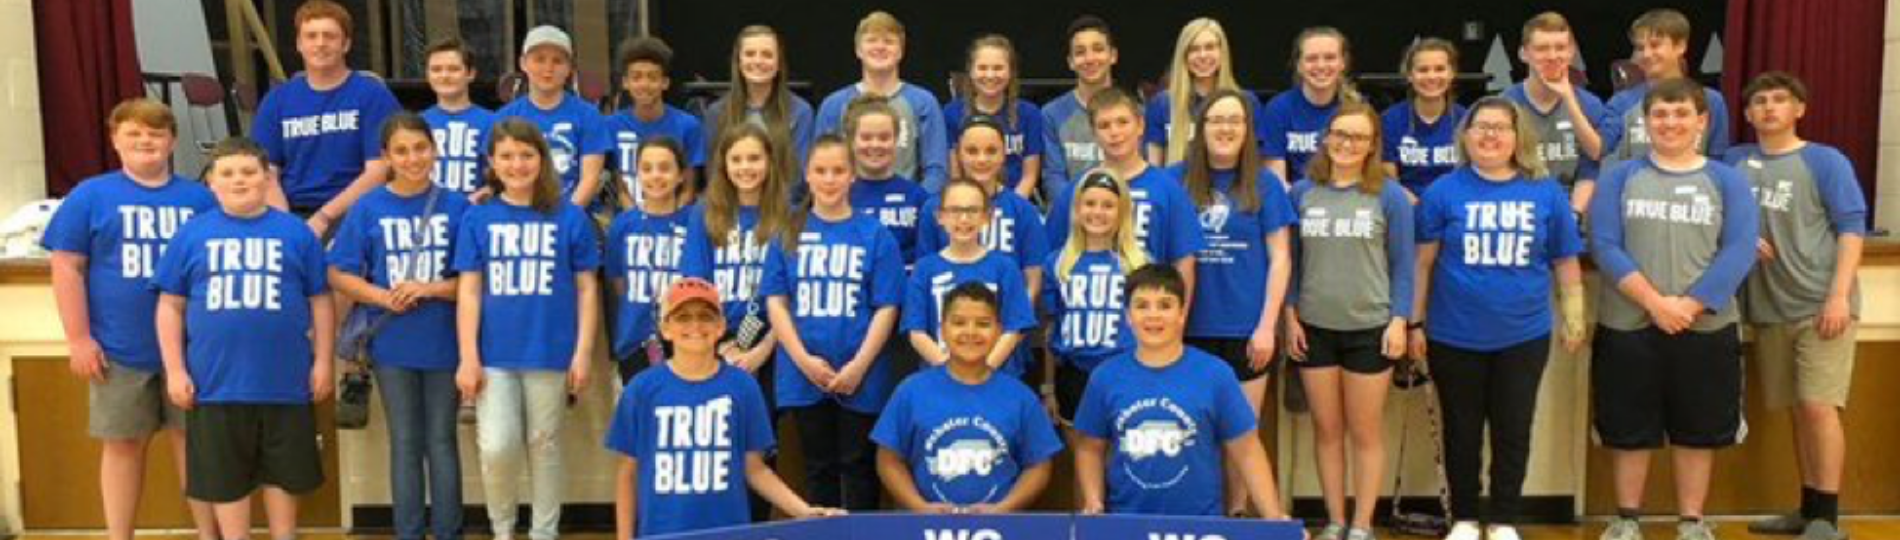 Webster County True Blue Crew